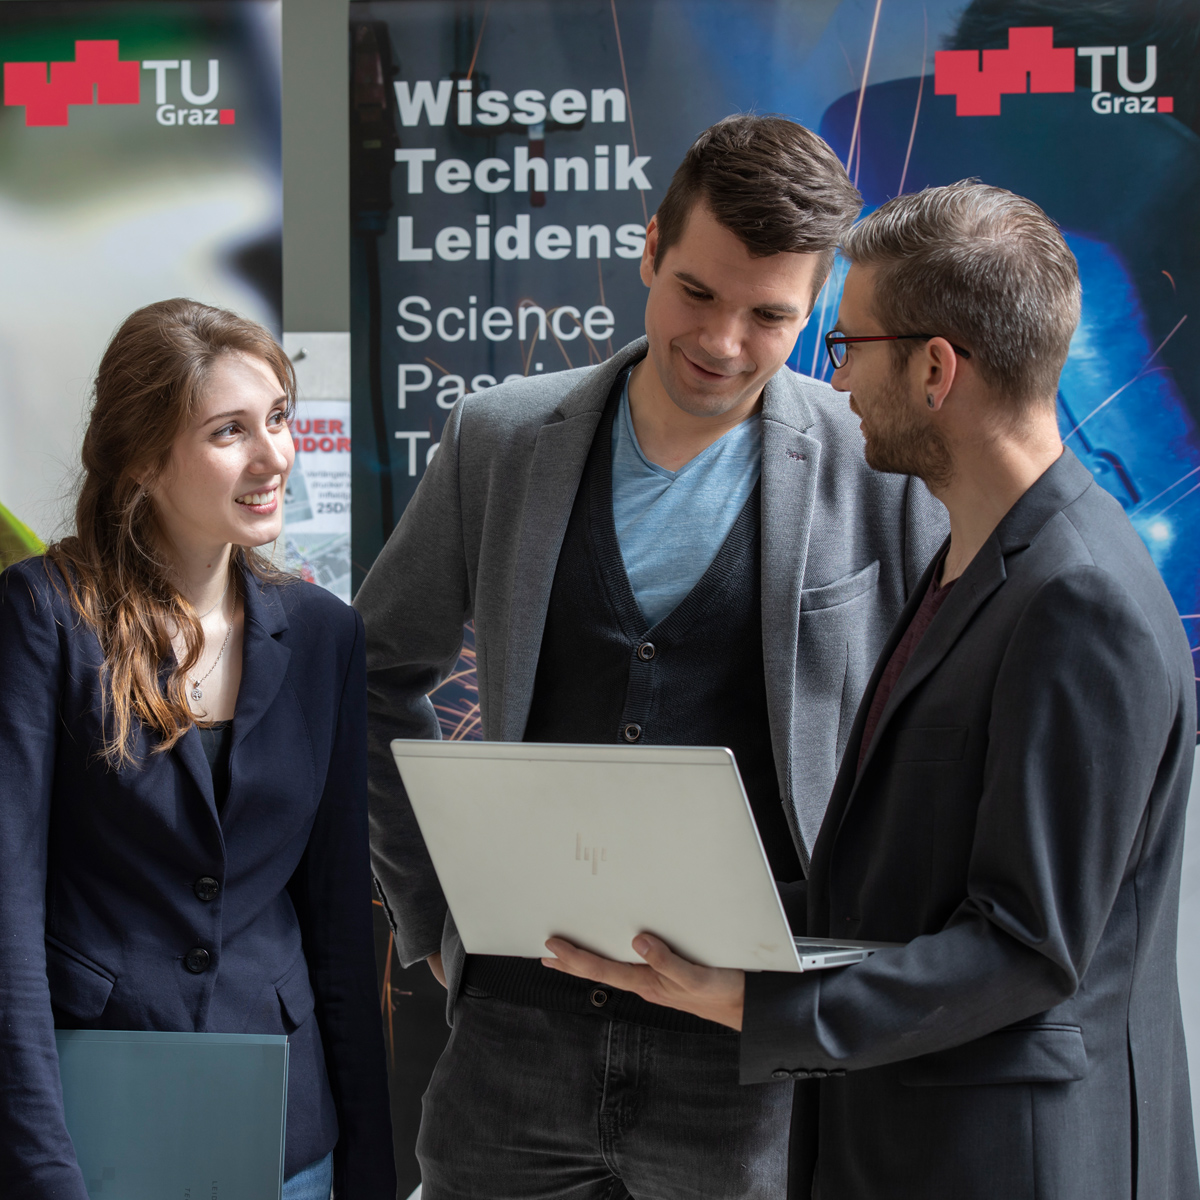 TU Graz, Studenten, Faces 2019